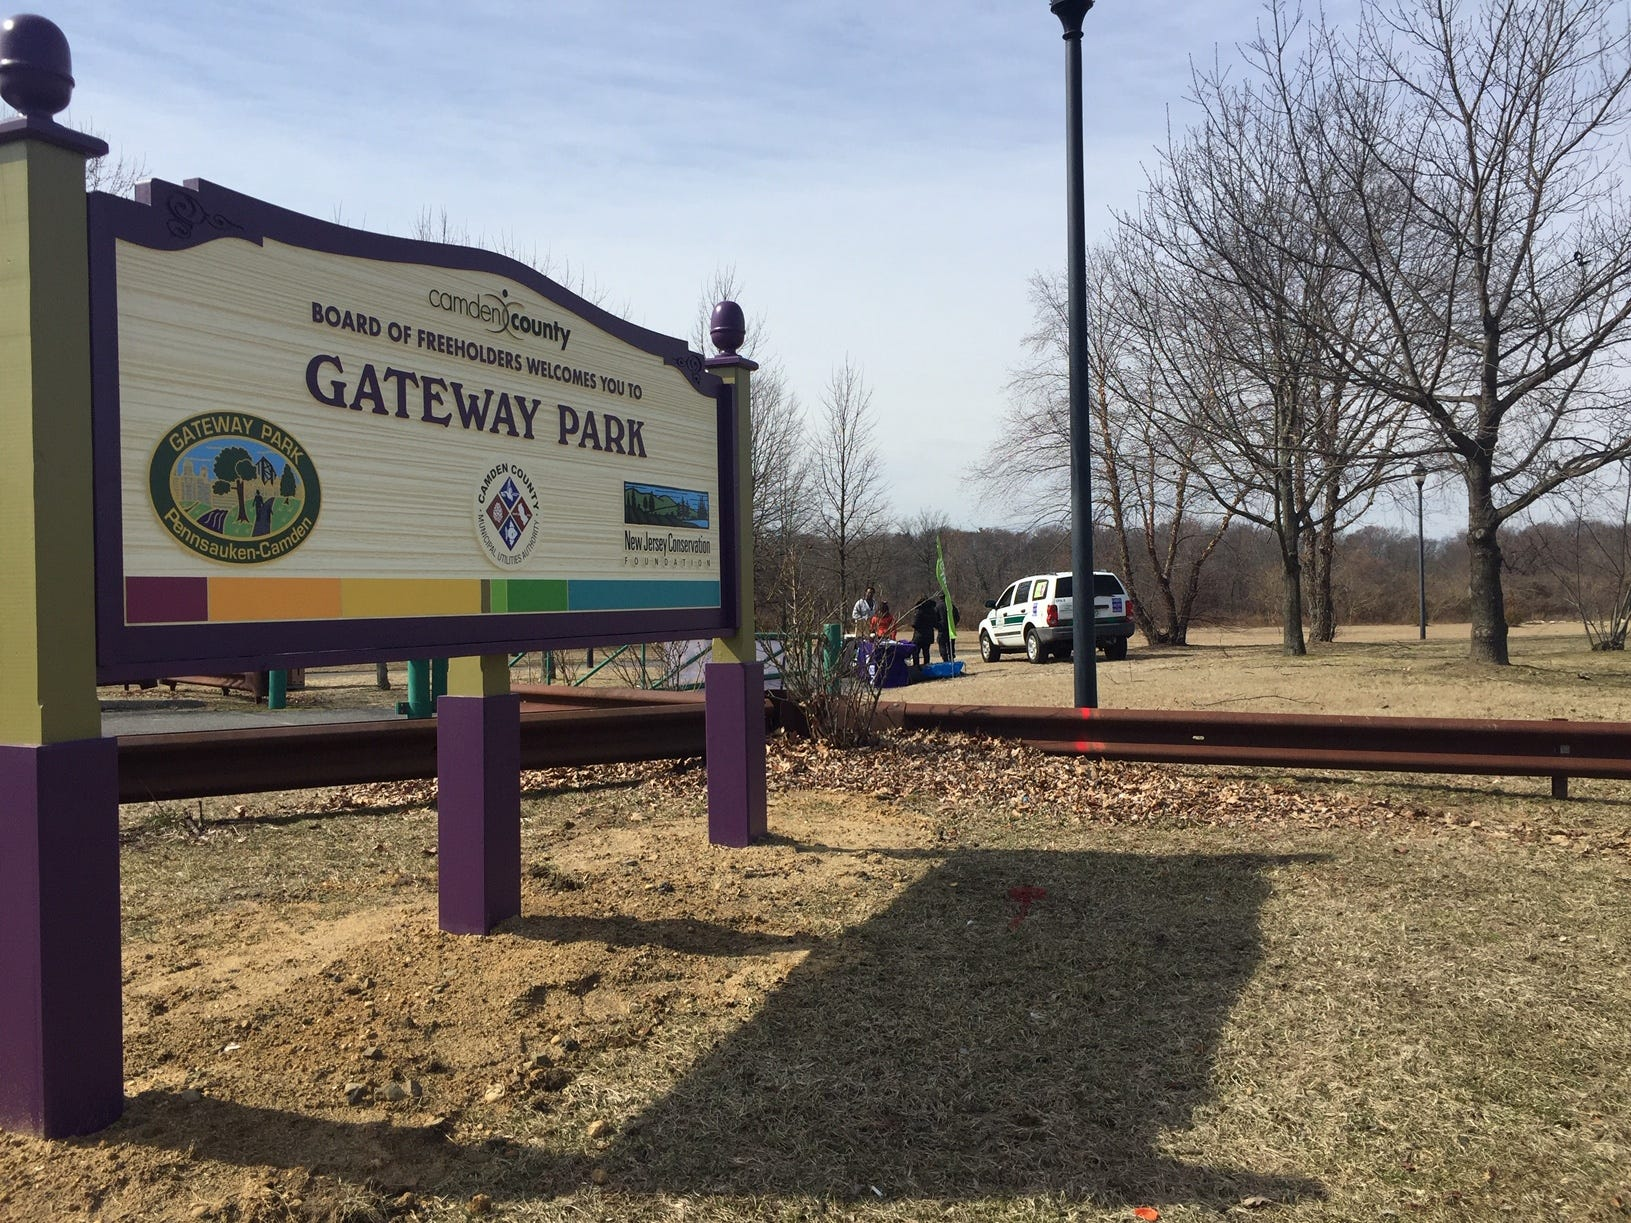 Gateway Park straddling Camden and Pennsauken  opens on March 11, 2019, for walking and biking leisure after a 20-year wait.